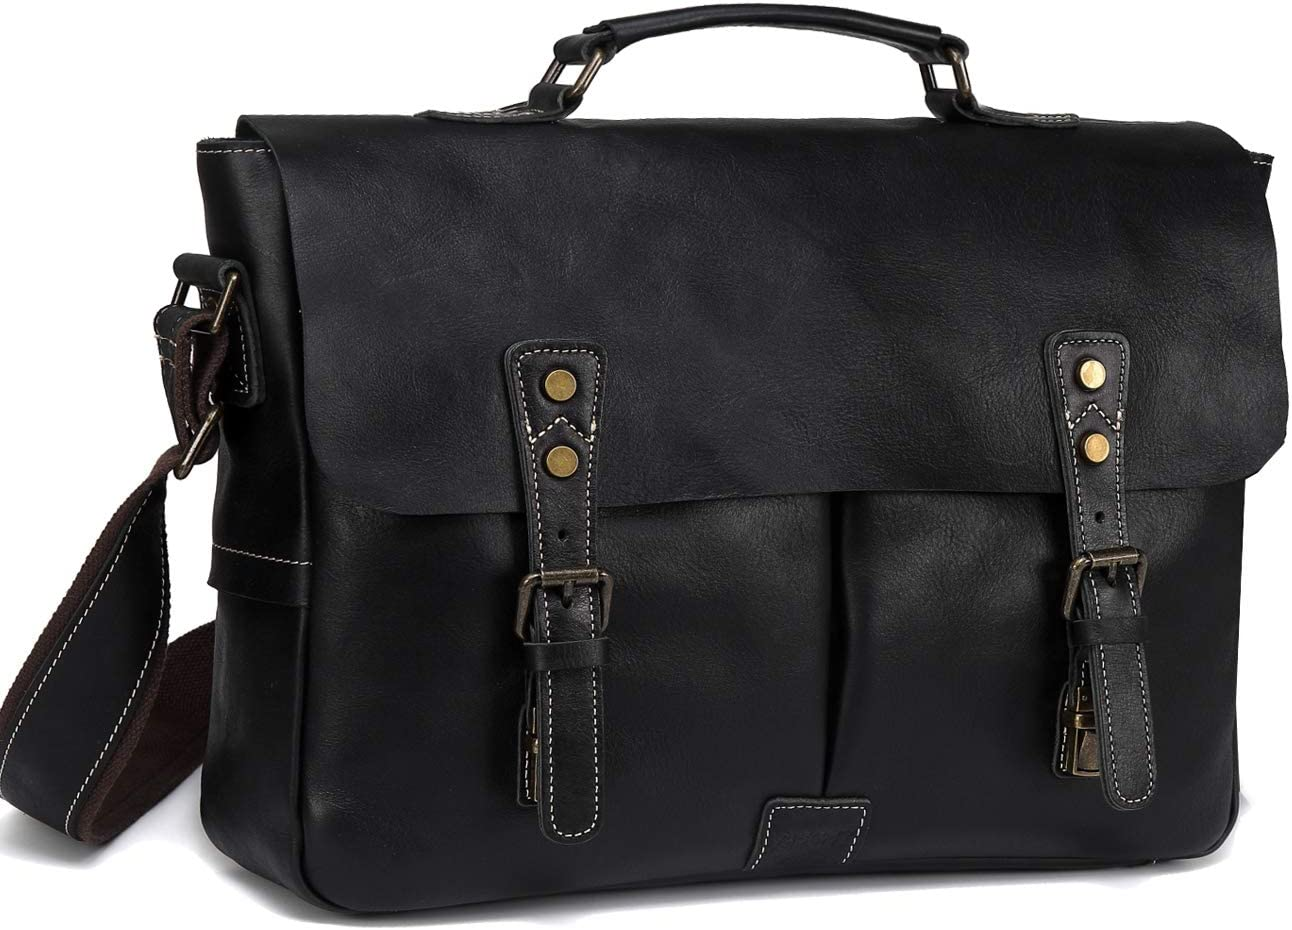 Leather Messenger Bag for Men, VASCHY Handmade Full Cowhide Leather Vintage Satchel 15.6 inch Laptop Business Briefcase Travel Shoulder Bag Black